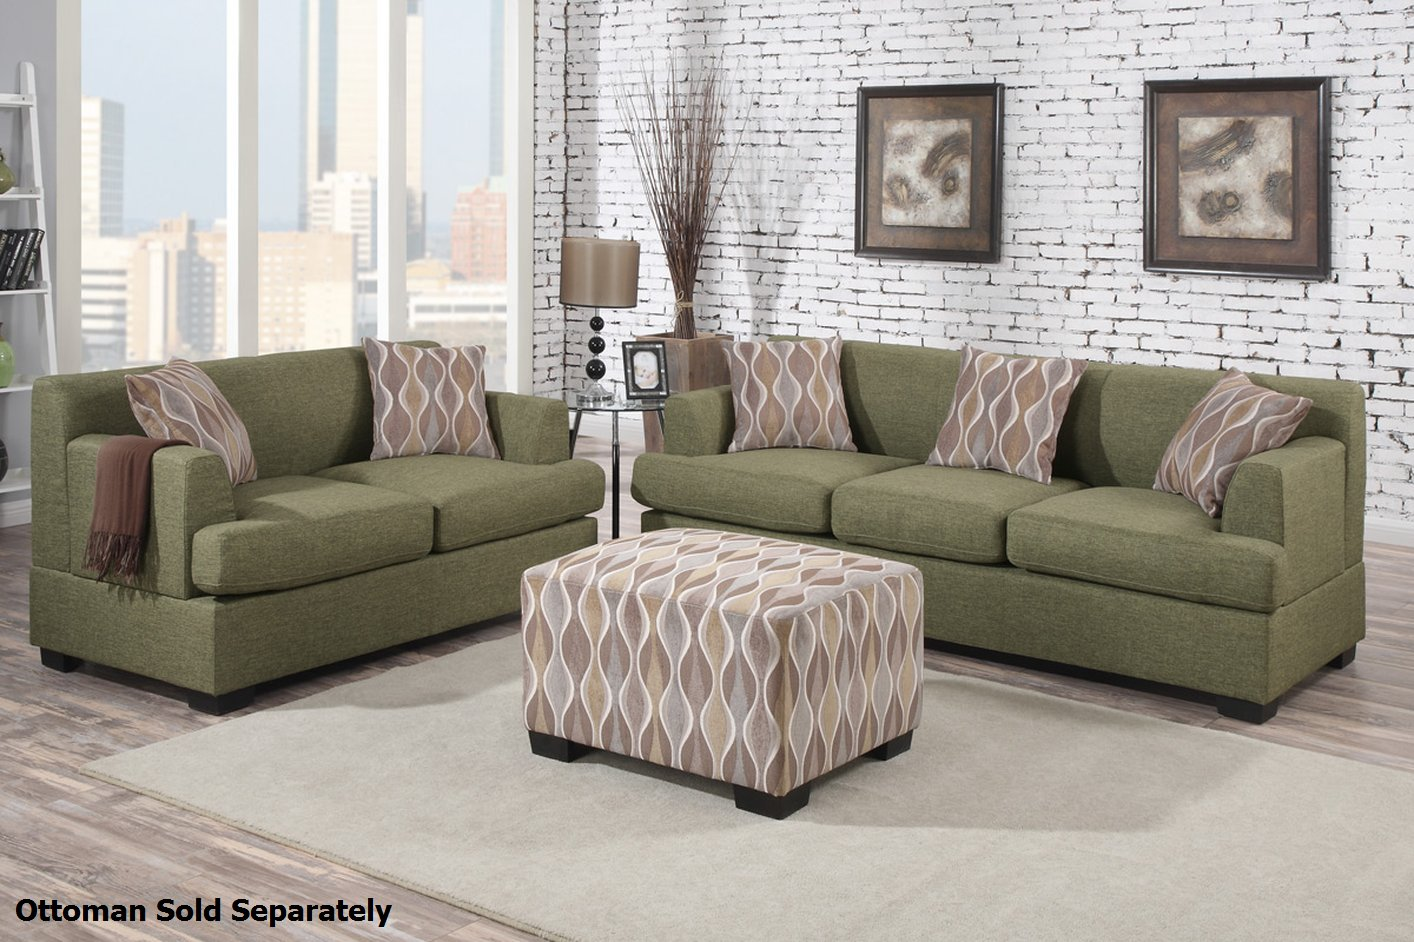 Montreal Green Fabric Sofa And Loveseat Set Steal A Sofa Furniture Outlet Los Angeles Ca